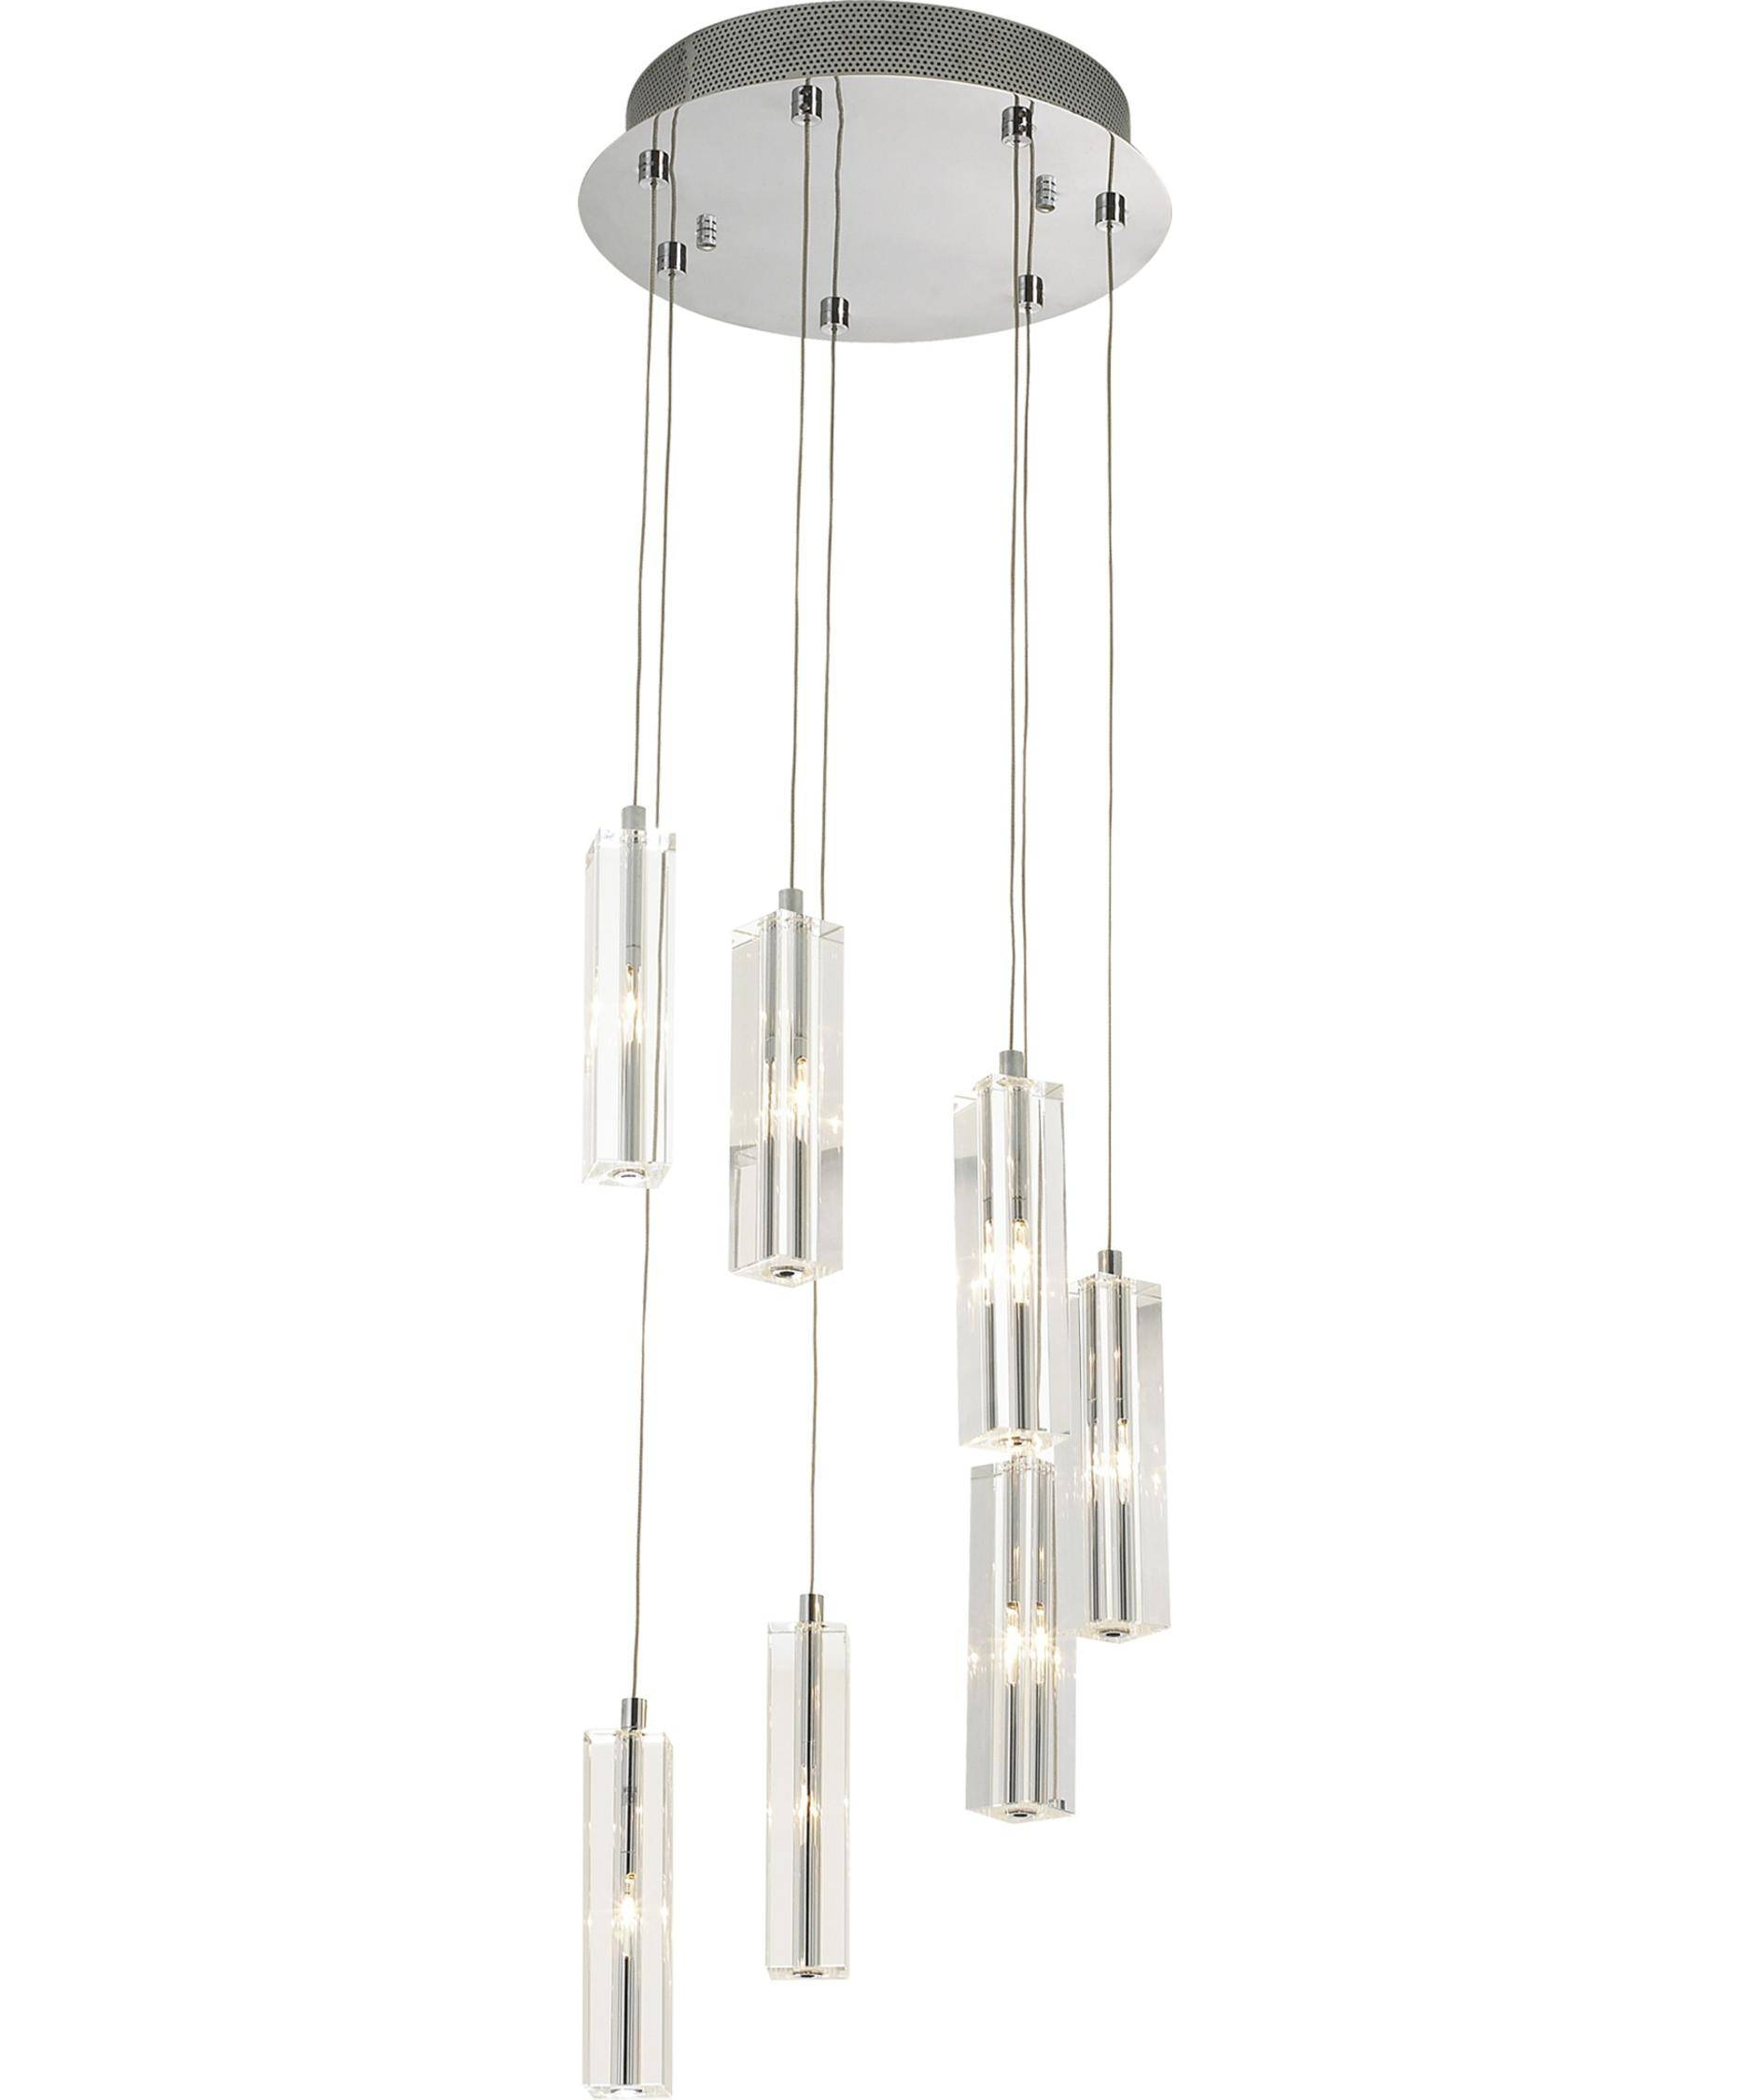 Trend Multi Pendant Light Fixture 15 For Mission Pendant Light throughout Mission Pendant Light Fixtures (Image 14 of 15)